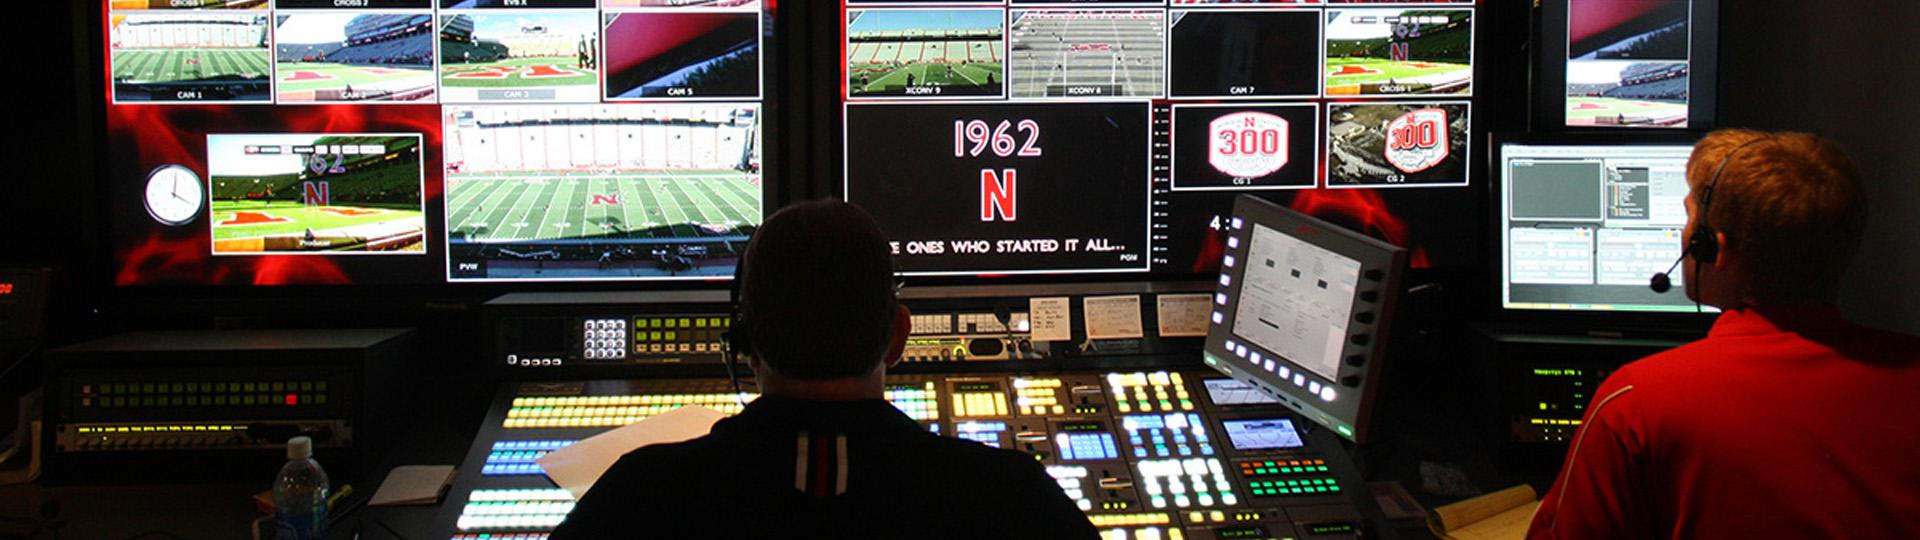 Production, presentation & IPTV solutions for sports